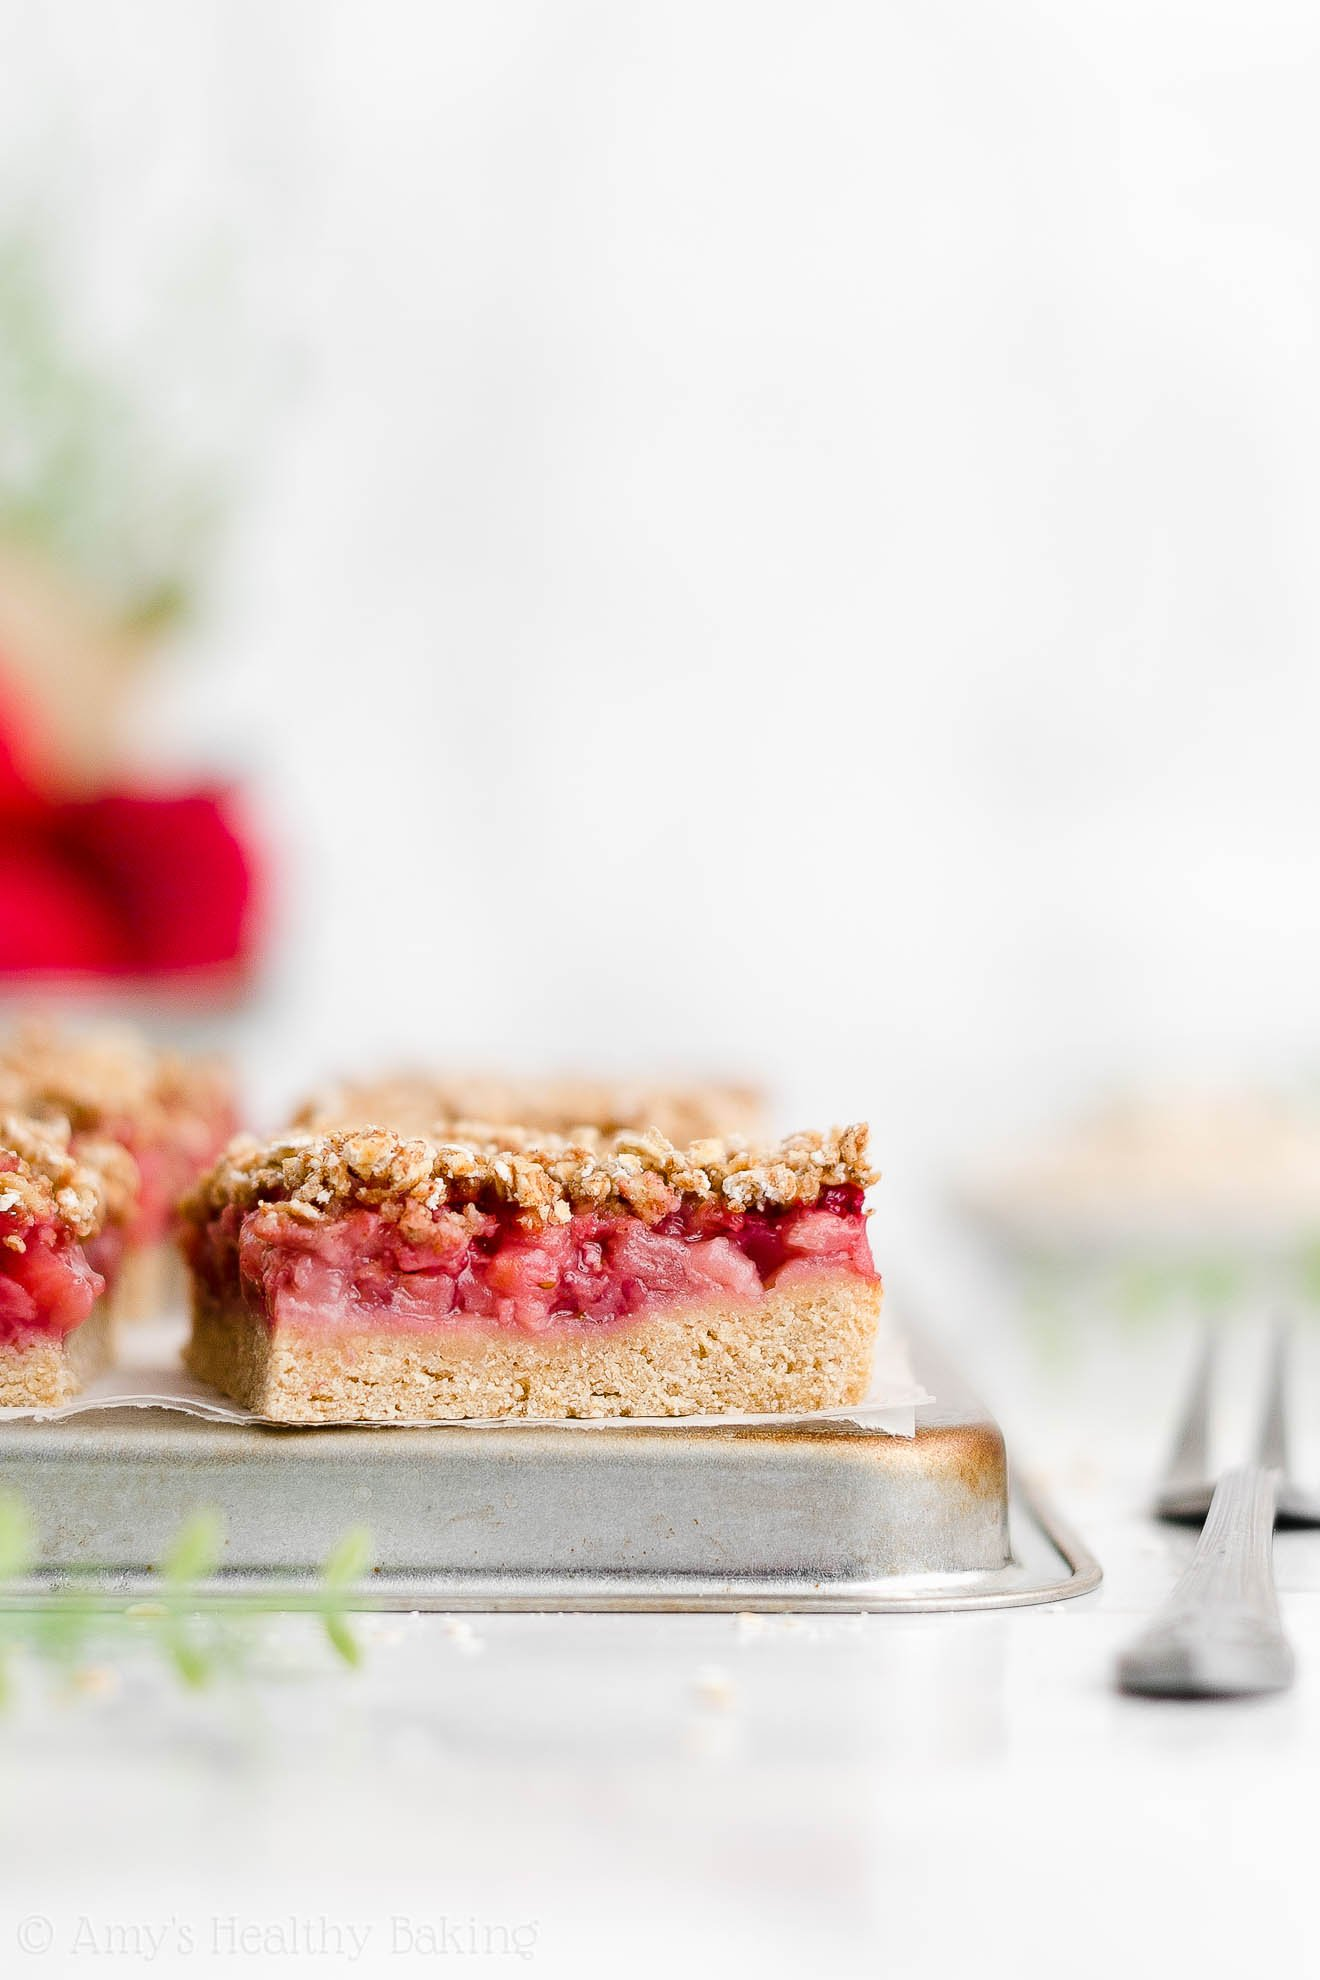 Best Healthy Whole Wheat Low Fat Low Calorie Strawberry Oat Crumble Bars